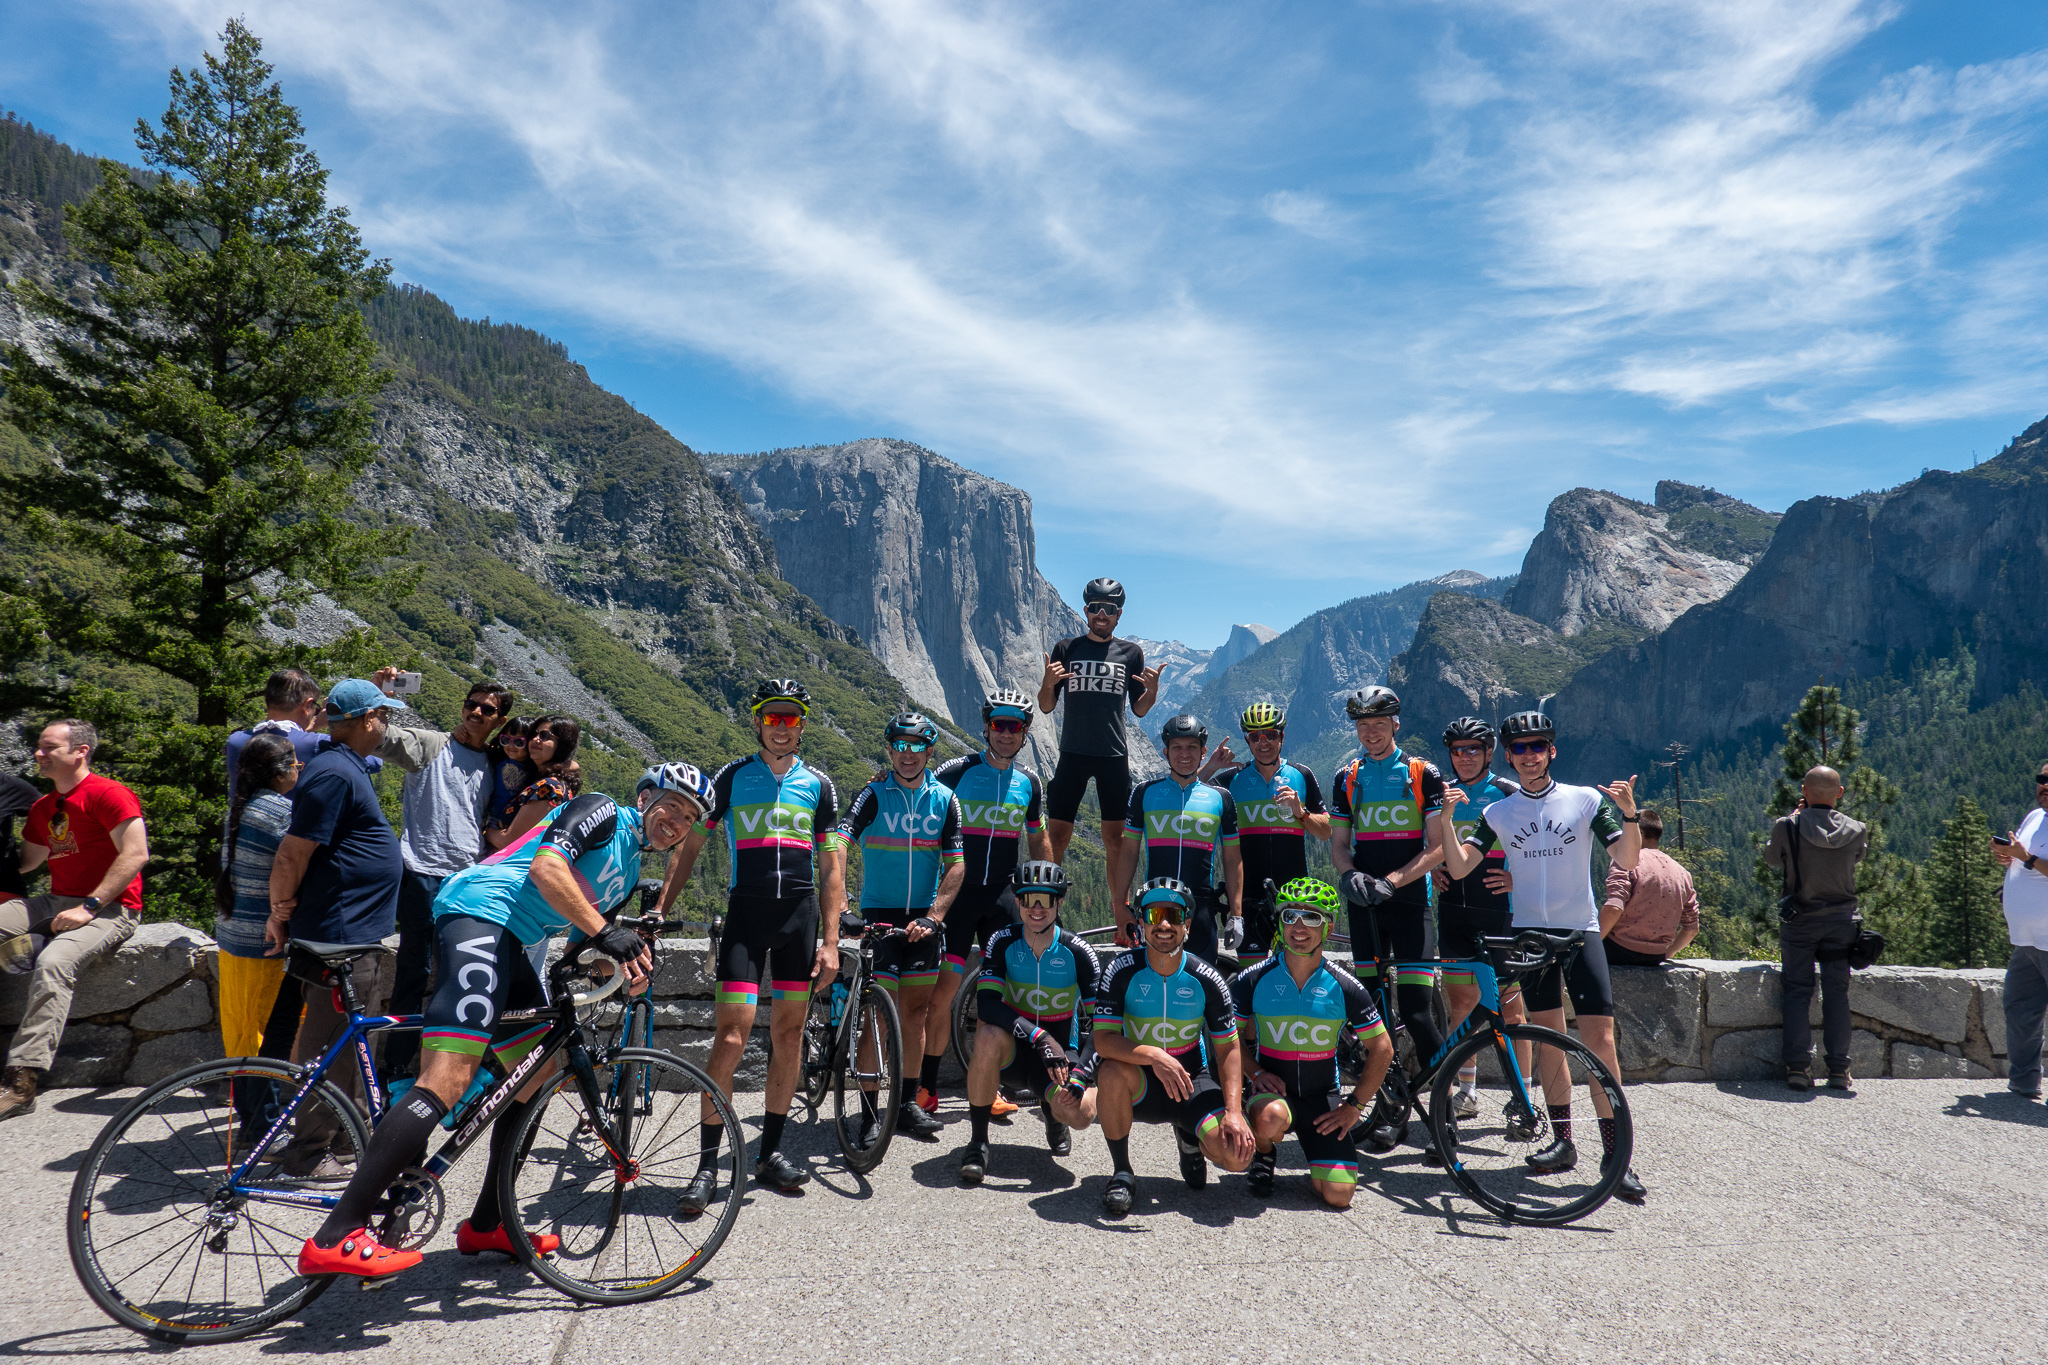 Group with Vegan Cyclist Tunnel View.jpg